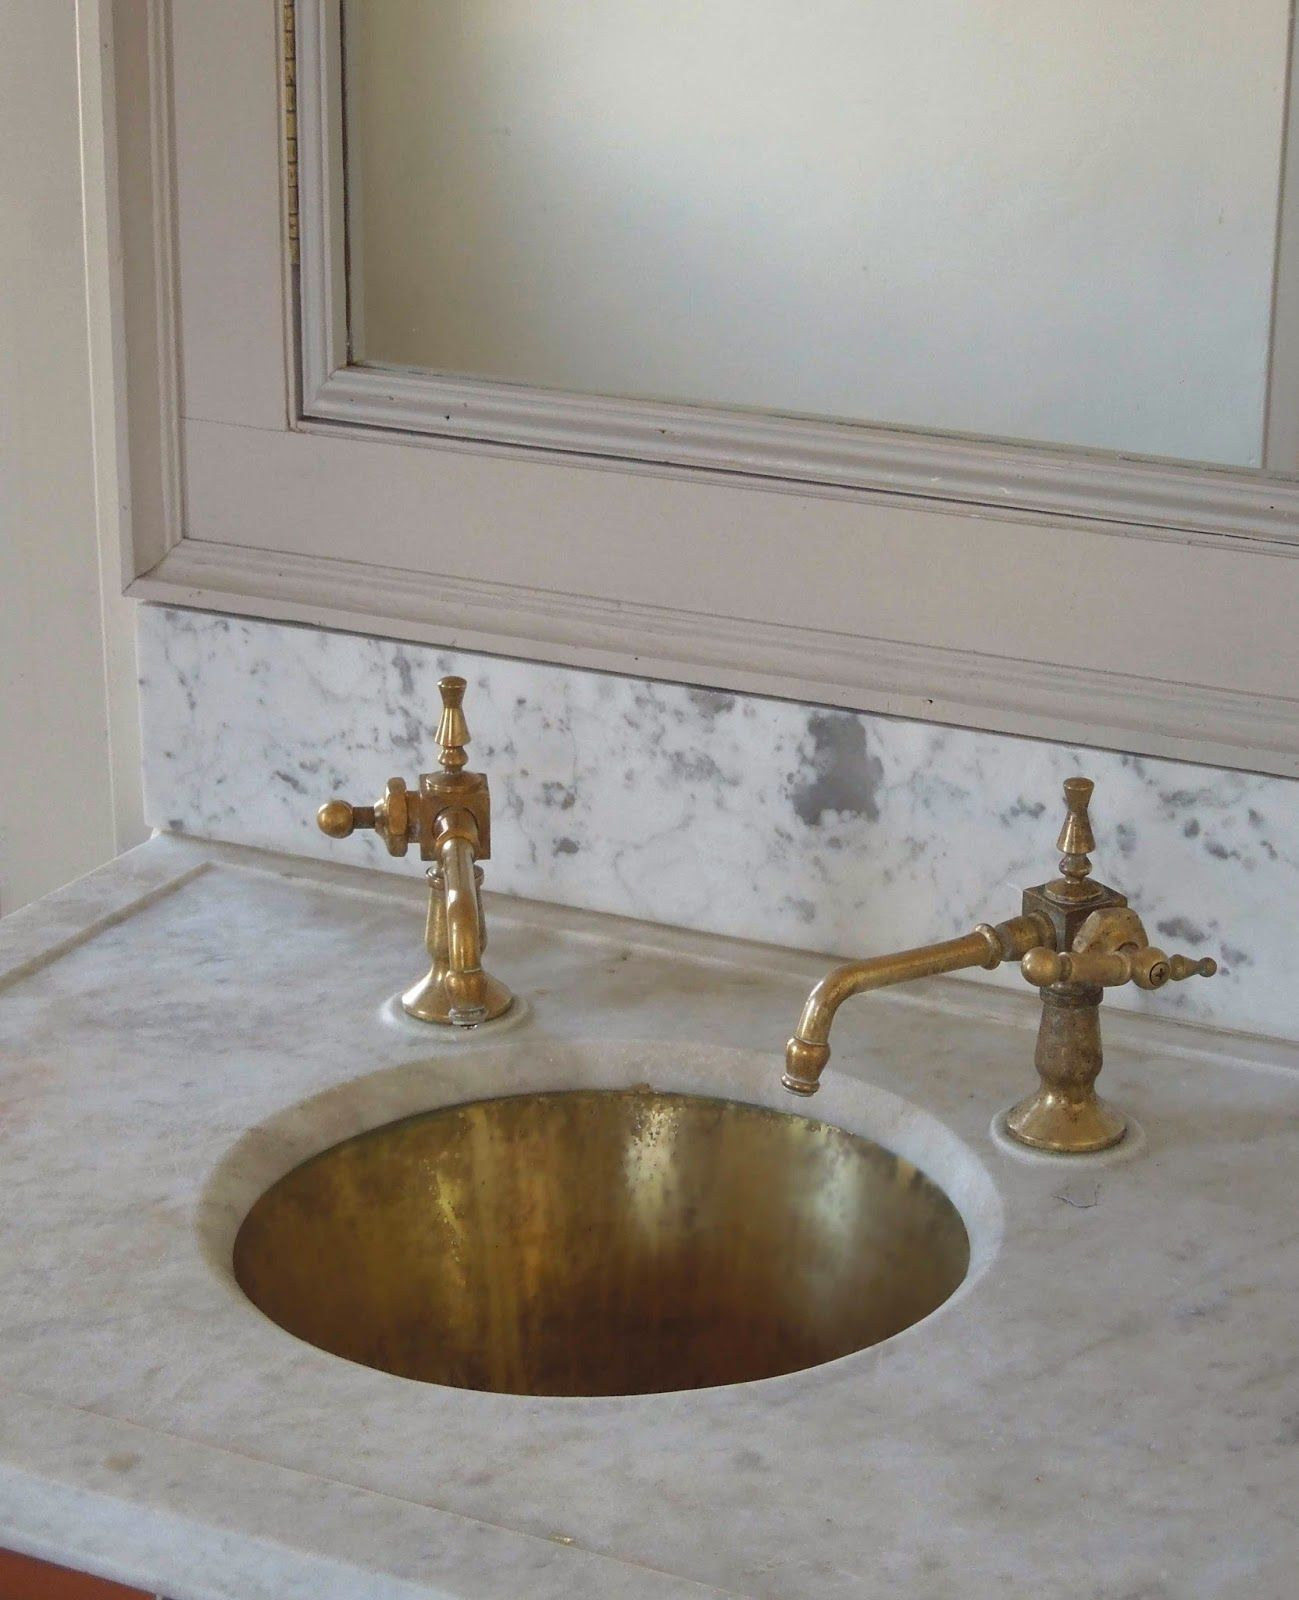 Unlacquered Brass Faucet Butler S Pantry Sink White Marble